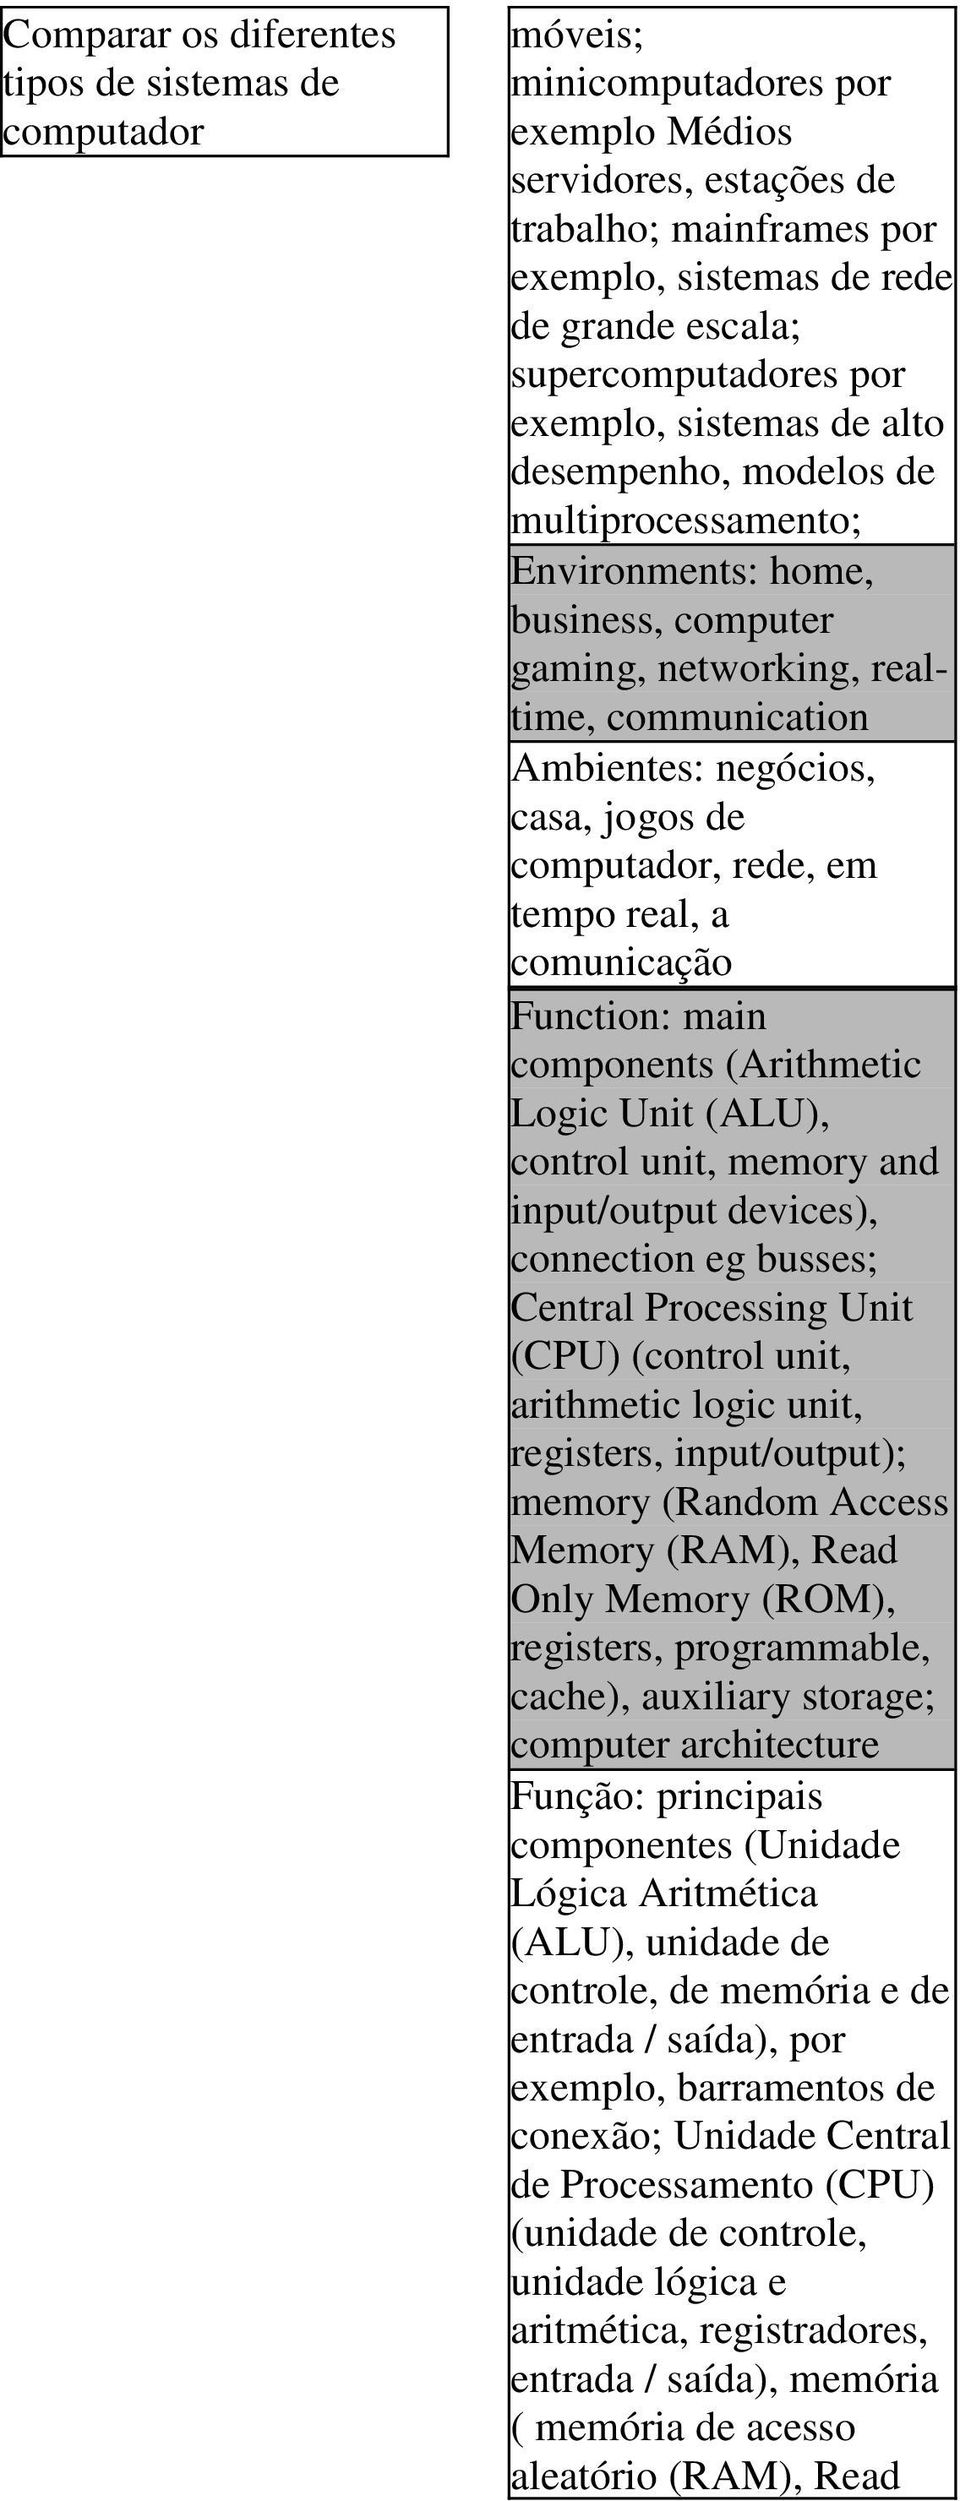 casa, jogos de computador, rede, em tempo real, a comunicação Function: main components (Arithmetic Logic Unit (ALU), control unit, memory and input/output devices), connection eg busses; Central